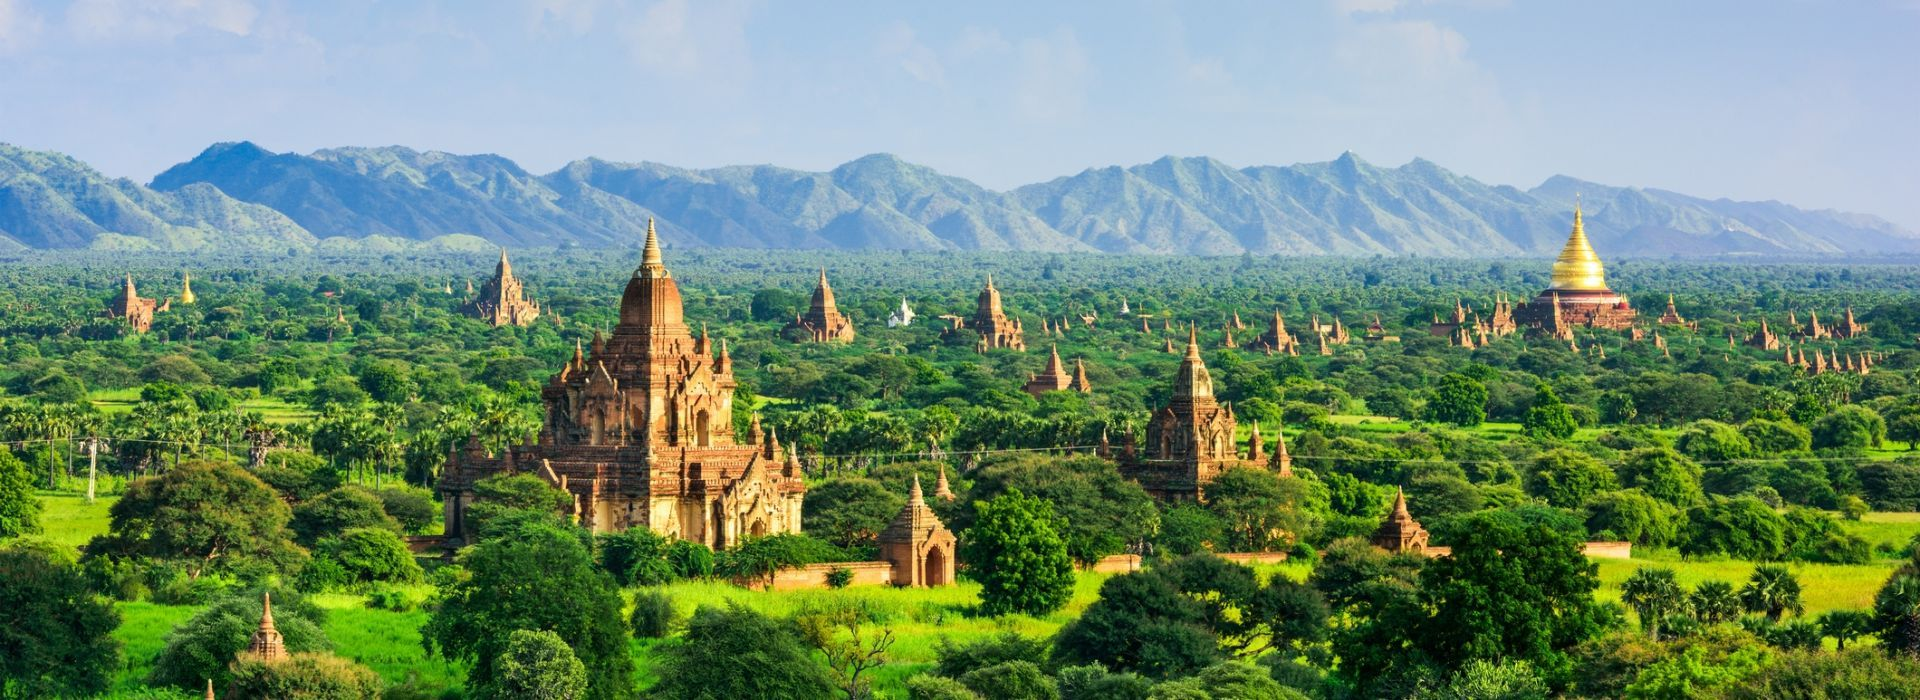 Wildlife, landscapes and nature Tours in Myanmar